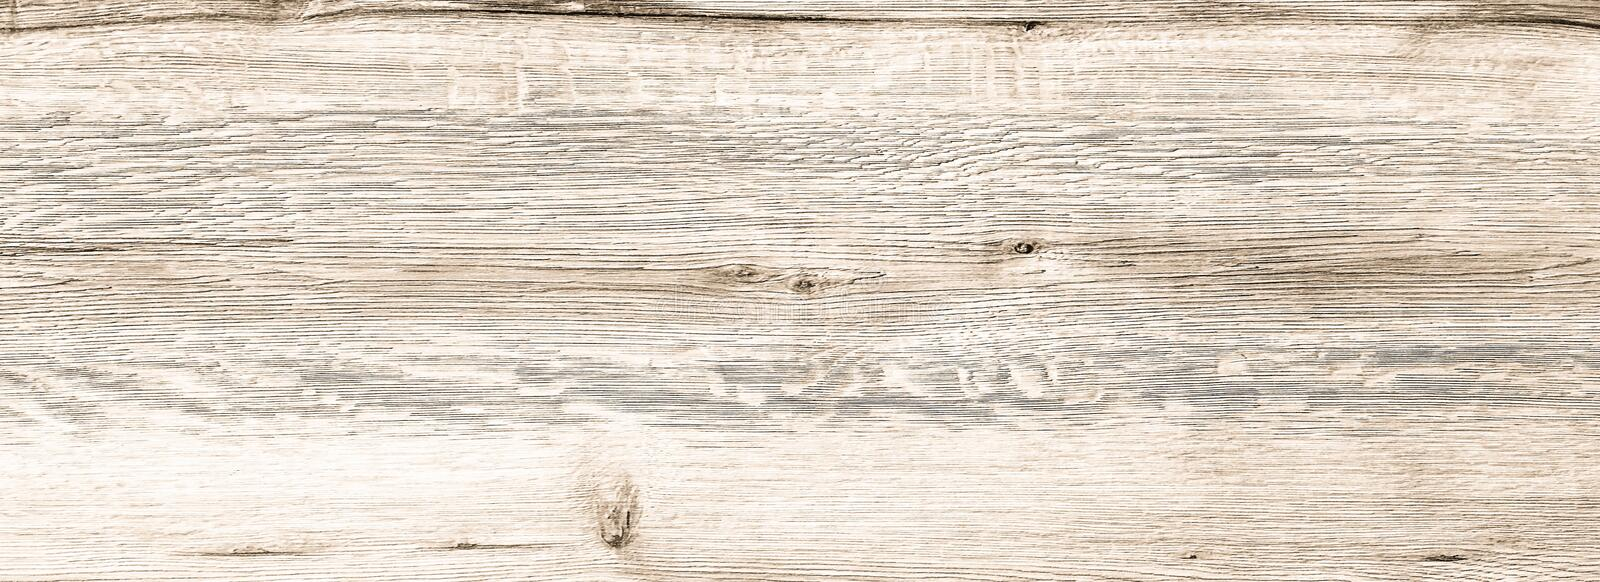 White Organic Wood Texture. Light Wooden Background. Old Washed Wood stock photos